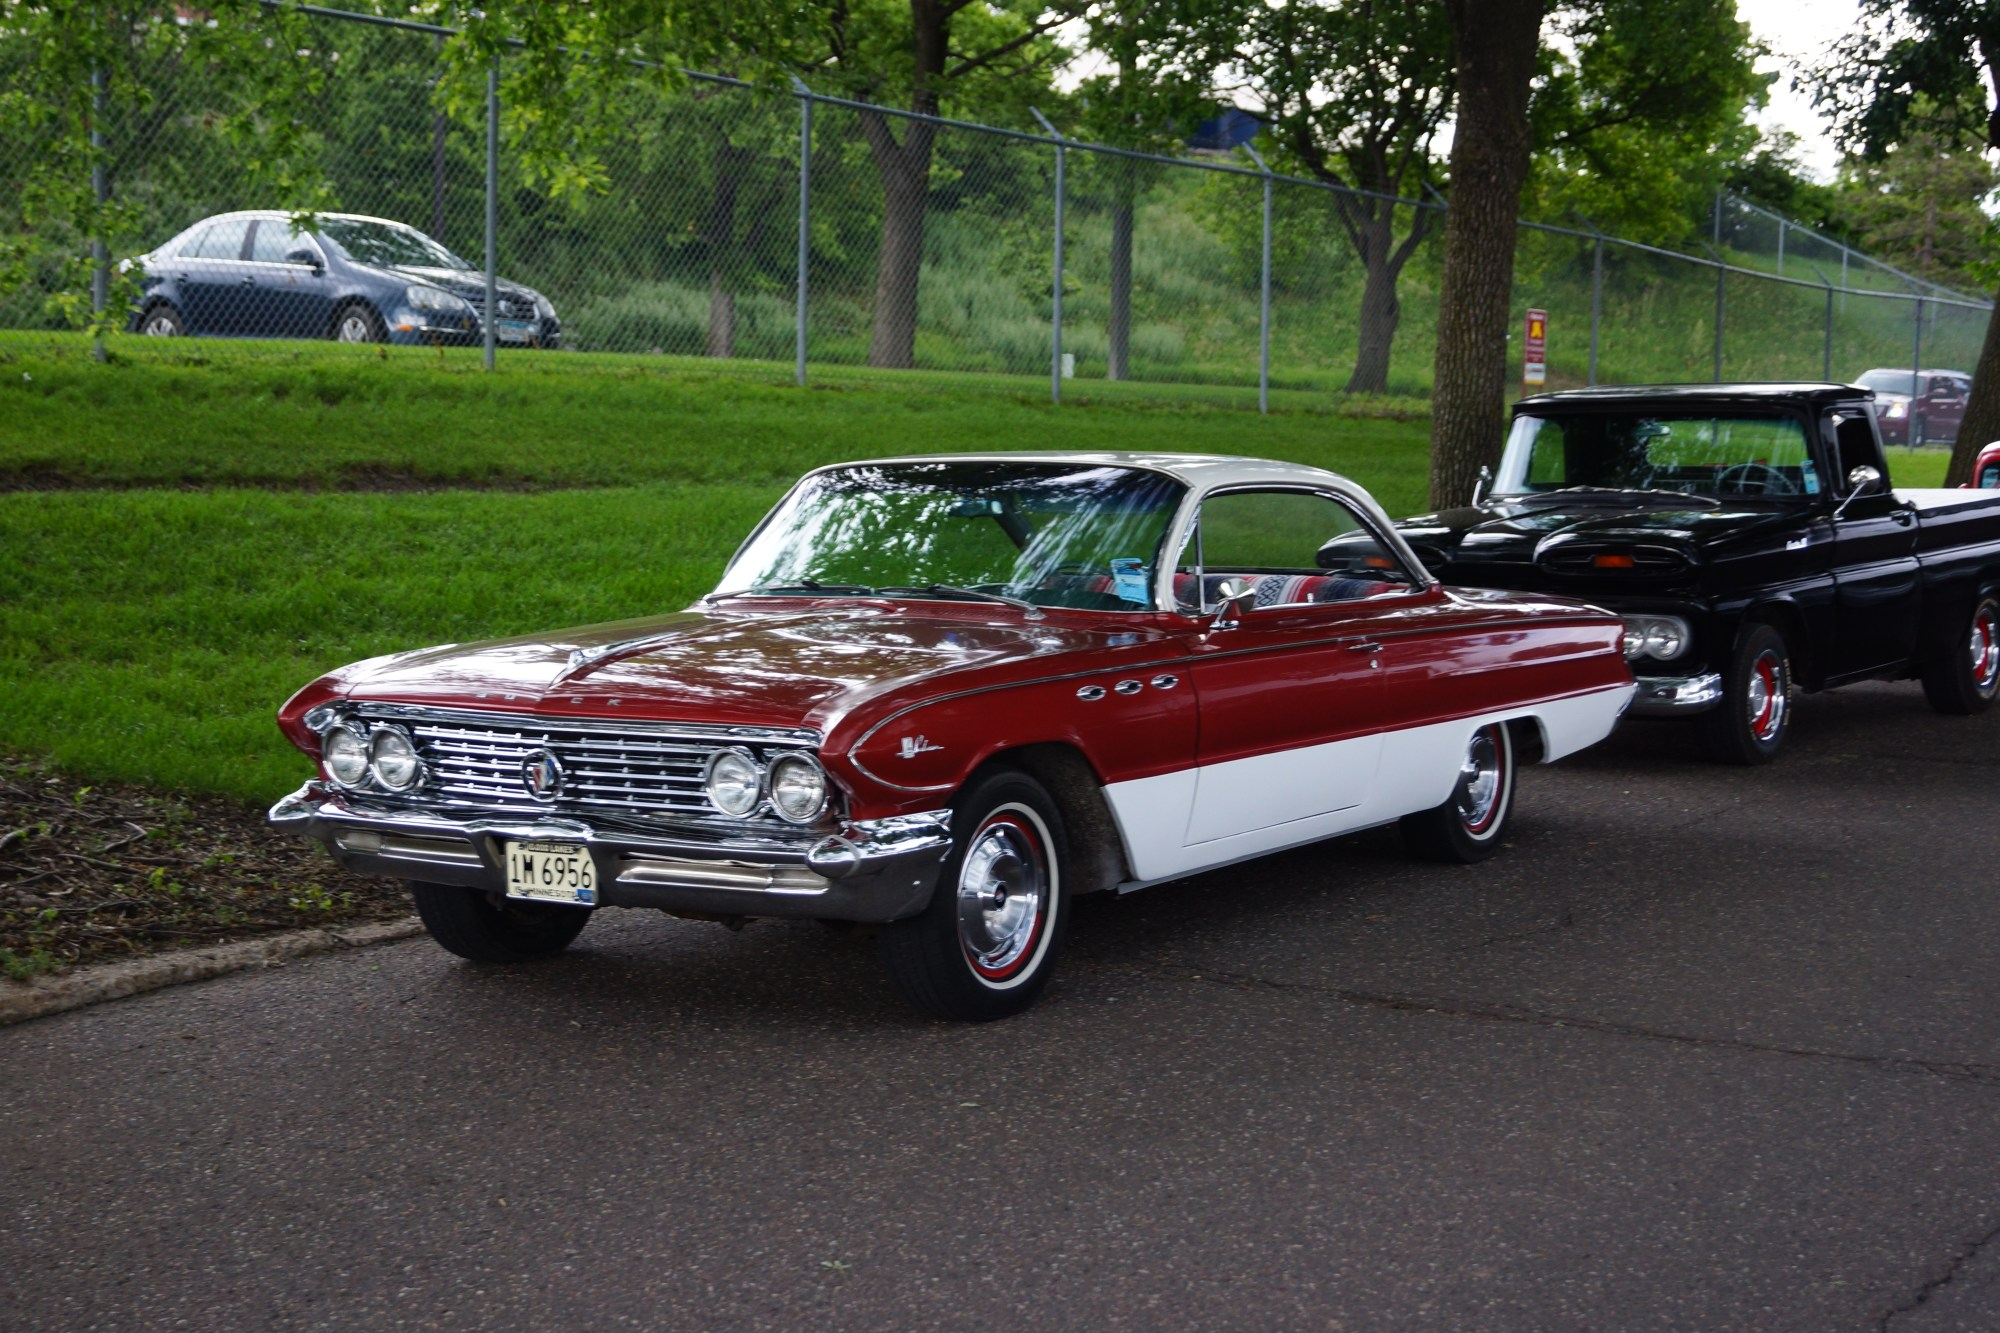 hight resolution of file 1961 buick lesabre 34770744913 jpg